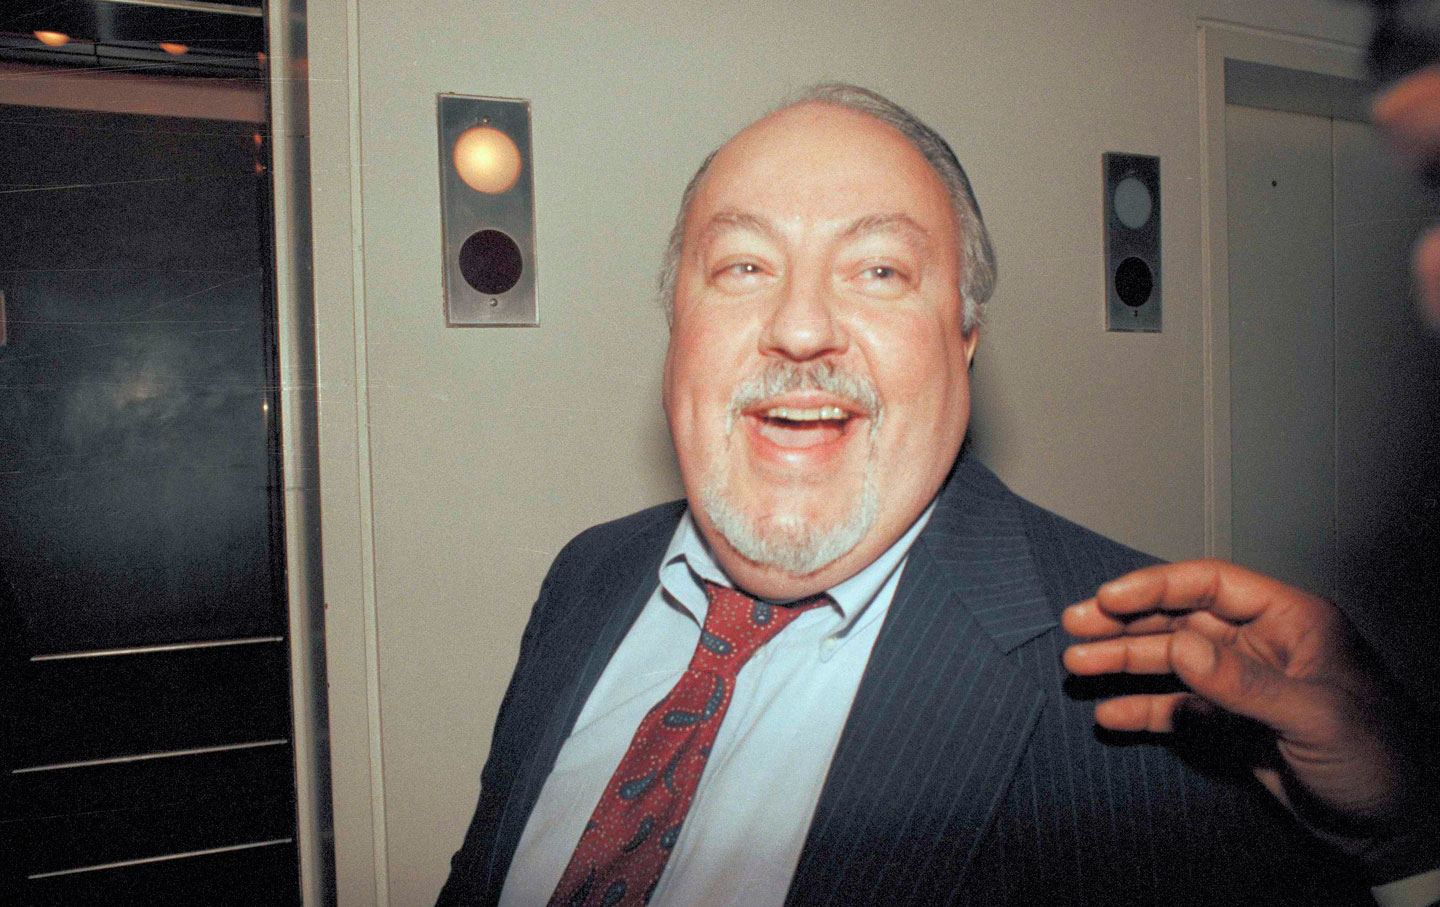 Roger Ailes, media guru and political strategist, dies at 77